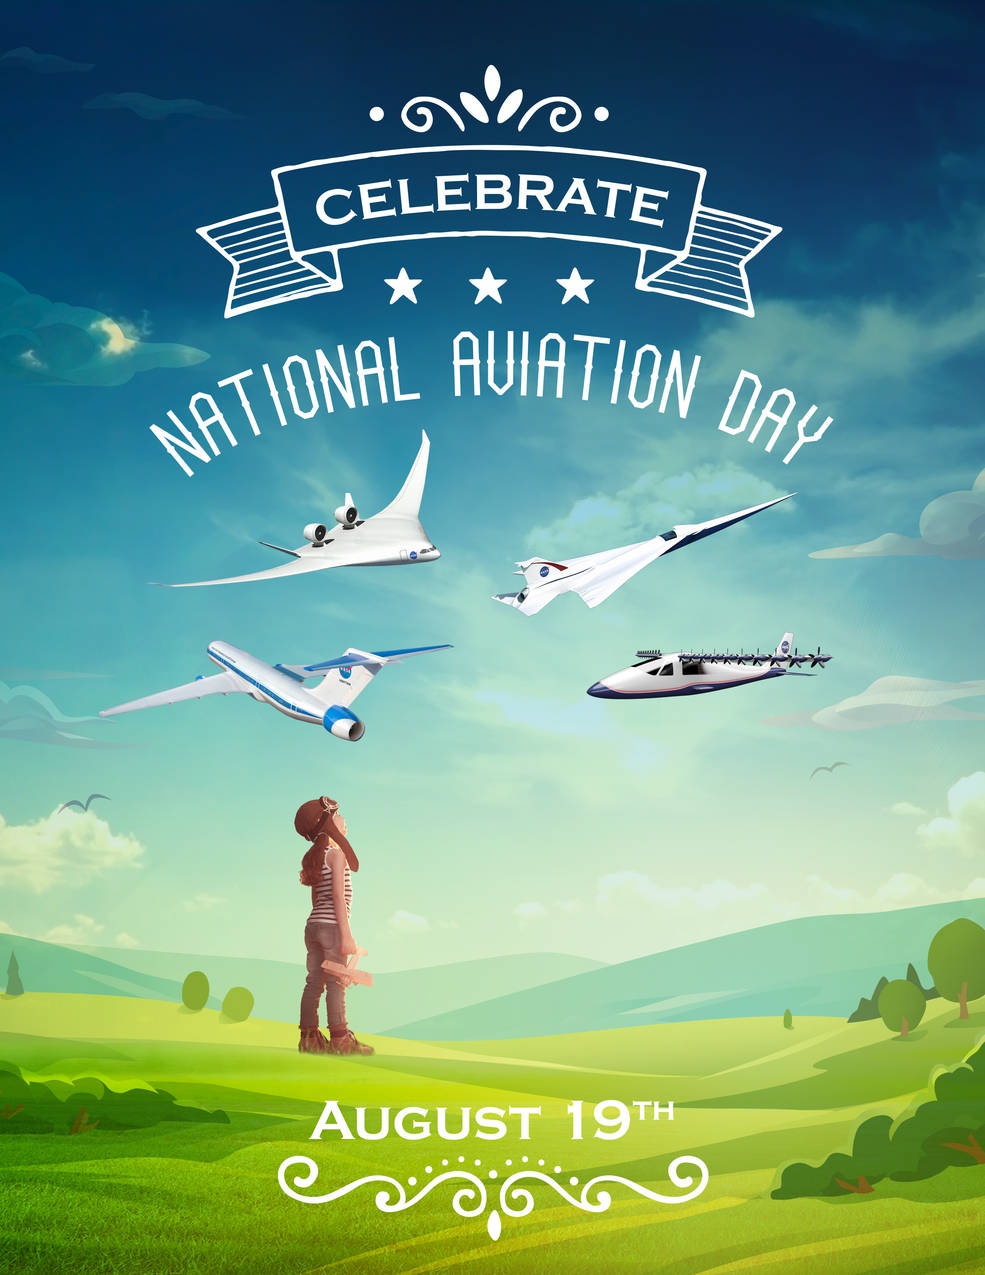 National Aviation Day 2016 illustration, showing a little girl looking up into the sky at possible future aircraft.